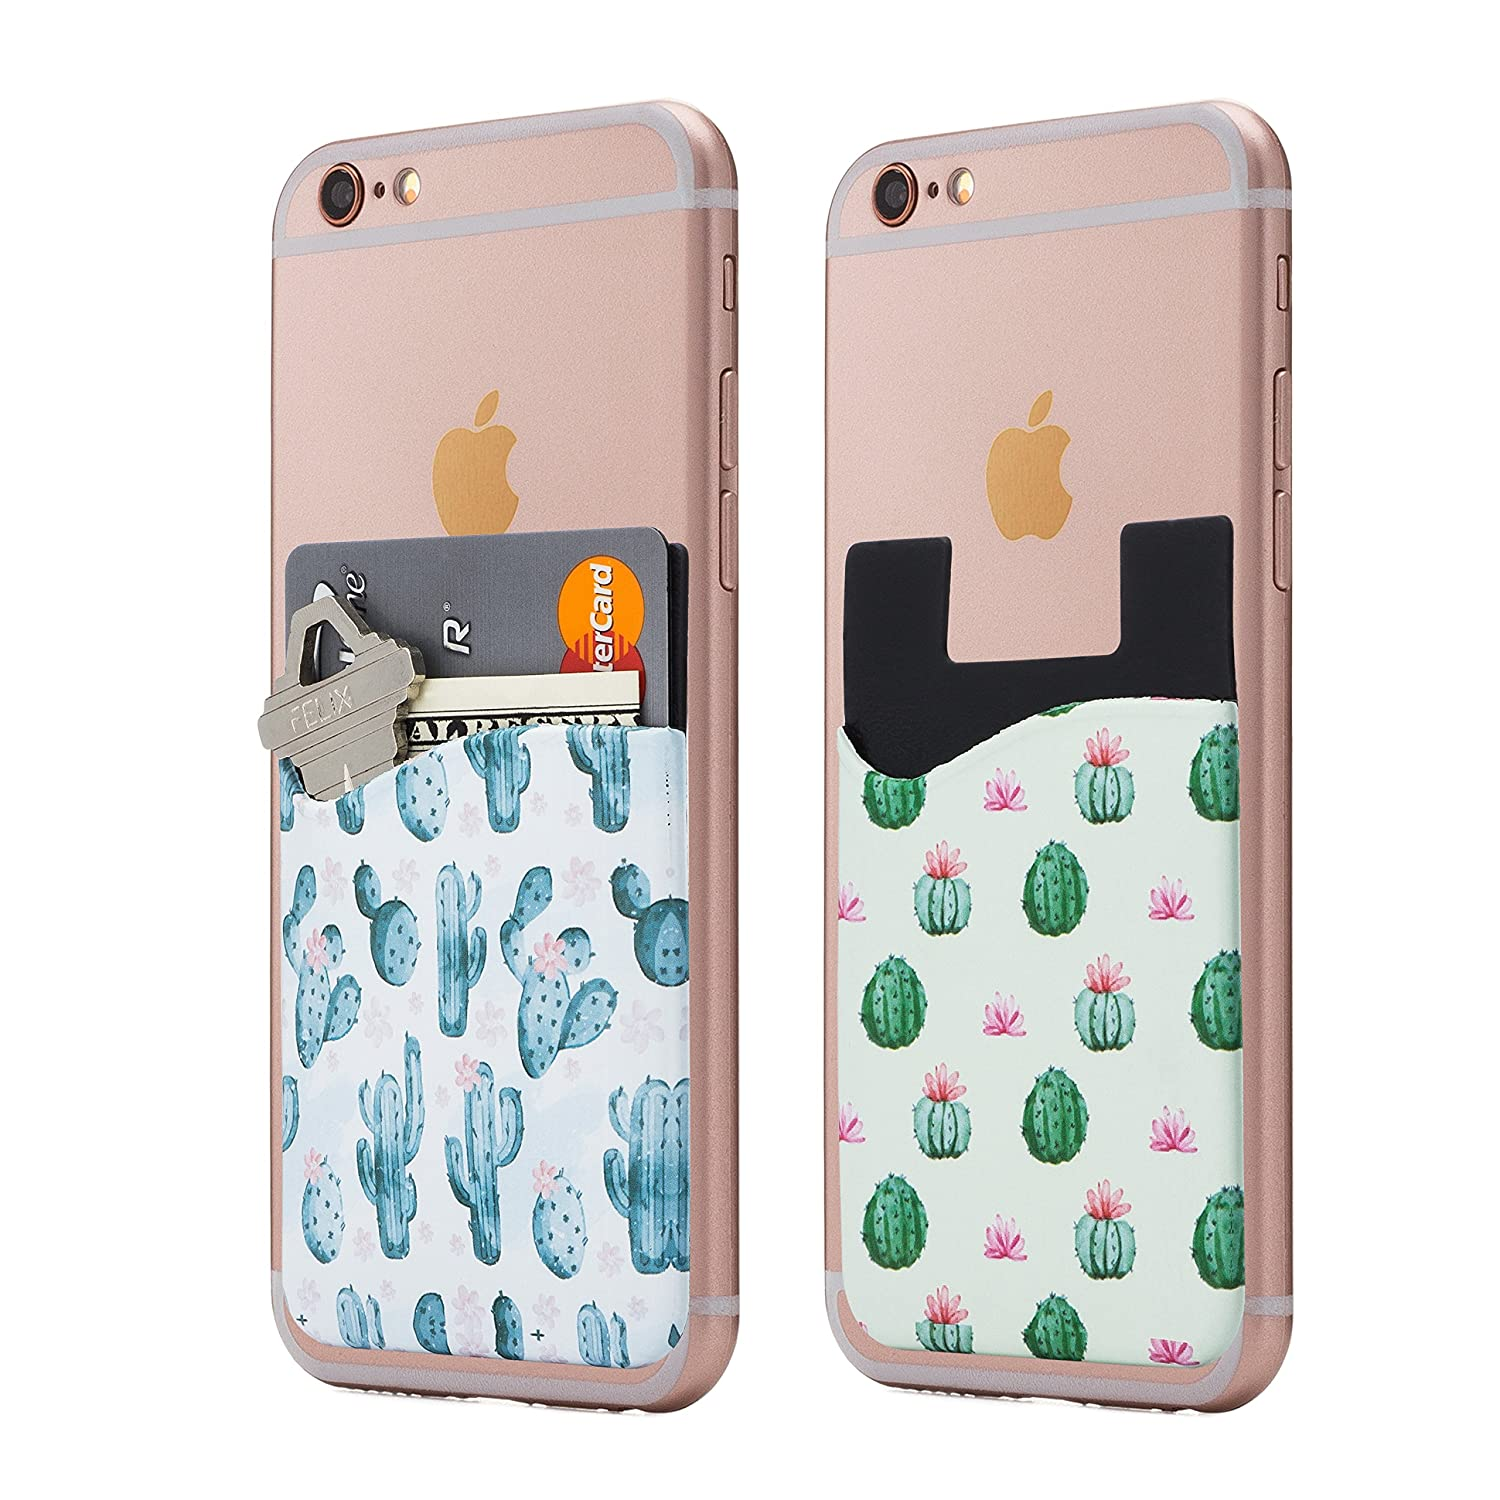 (Two) Cactus Phone Card Holder - Phone Stick on Wallet - Card Holder Phone Pocket for iPhone, Android and all Smartphones. (Cactus) Cardly